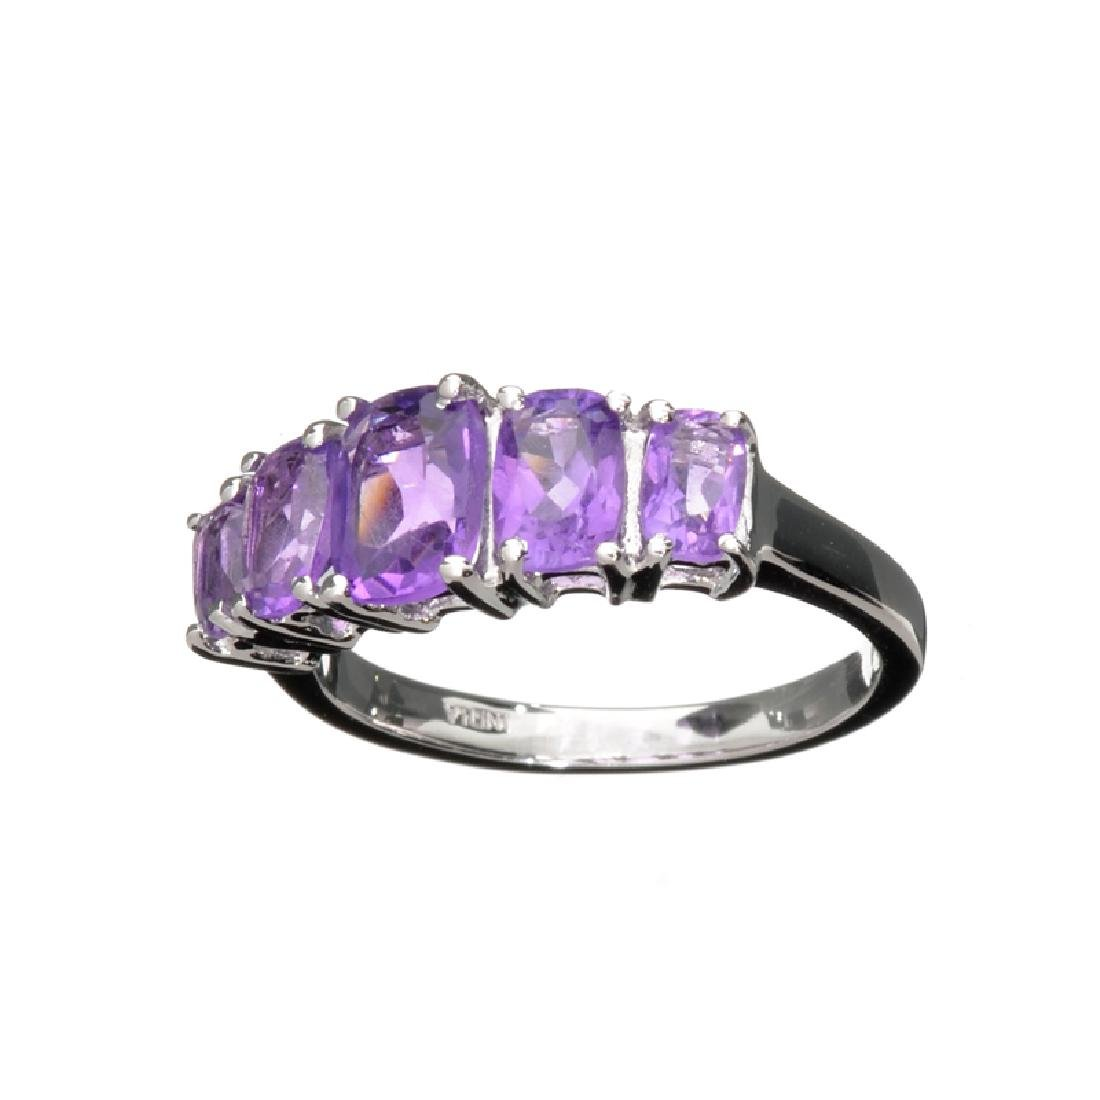 APP: 1k Fine Jewelry 1.50CT Oval Cut Purple Amethyst